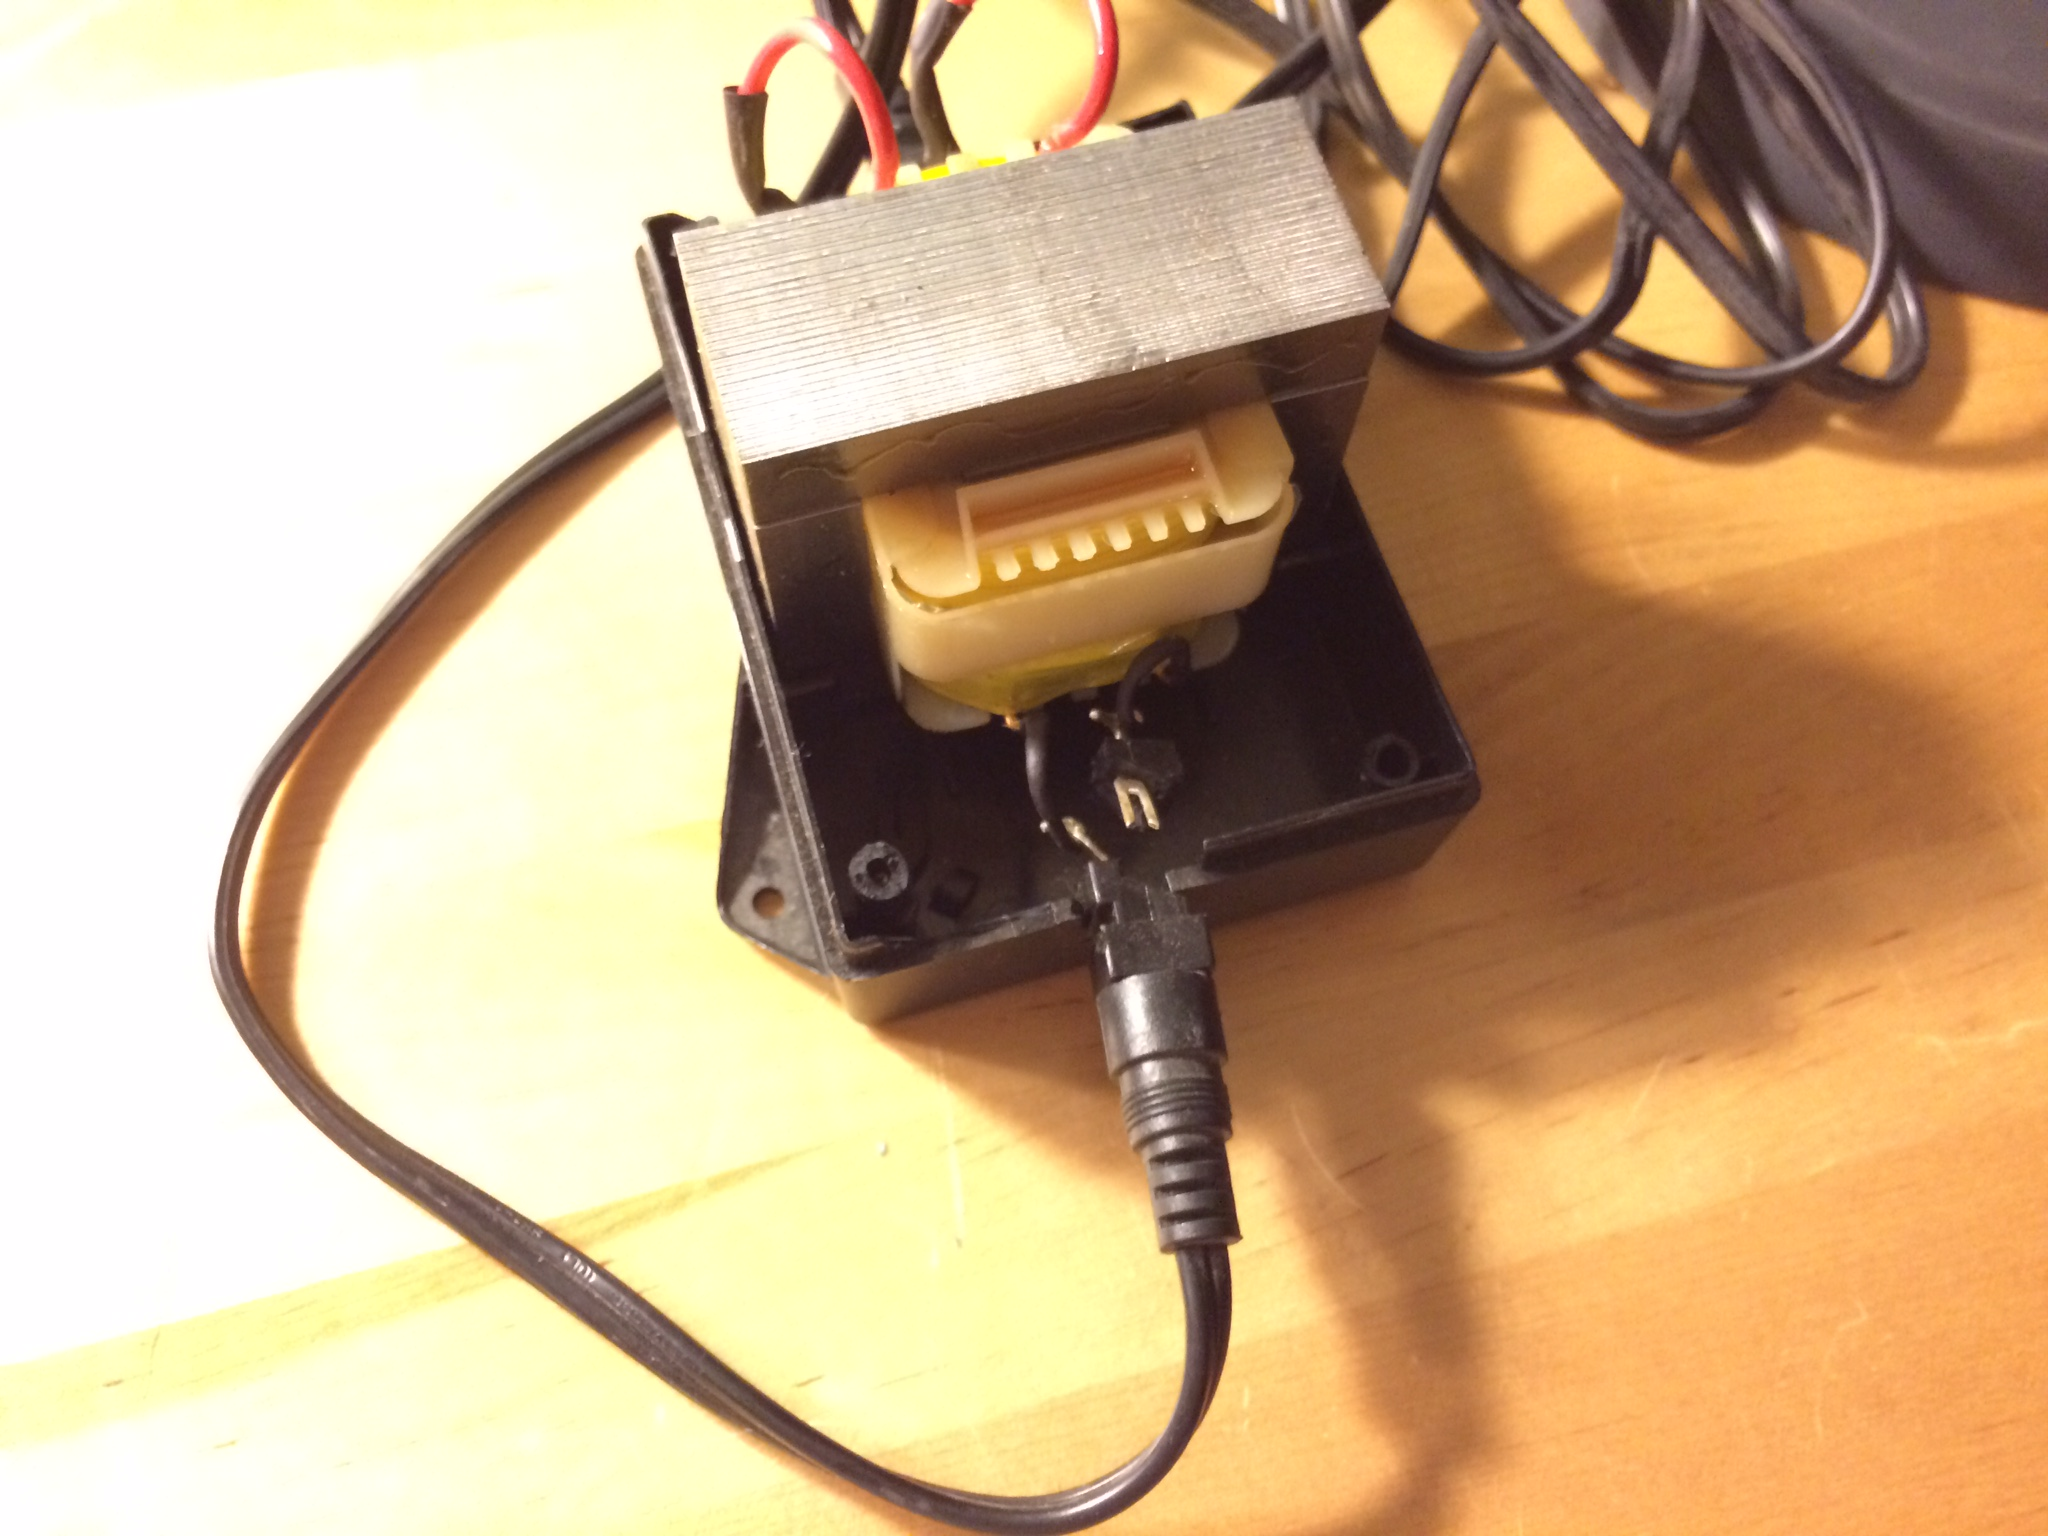 Repairing Step Down Transformer Lamp Oscium Isolation Wiring Diagram As Well Not Only Does This Prevent The Proper Function Of But Exposed Contacts Could Touch And Create A Short Circuit That Either Damages